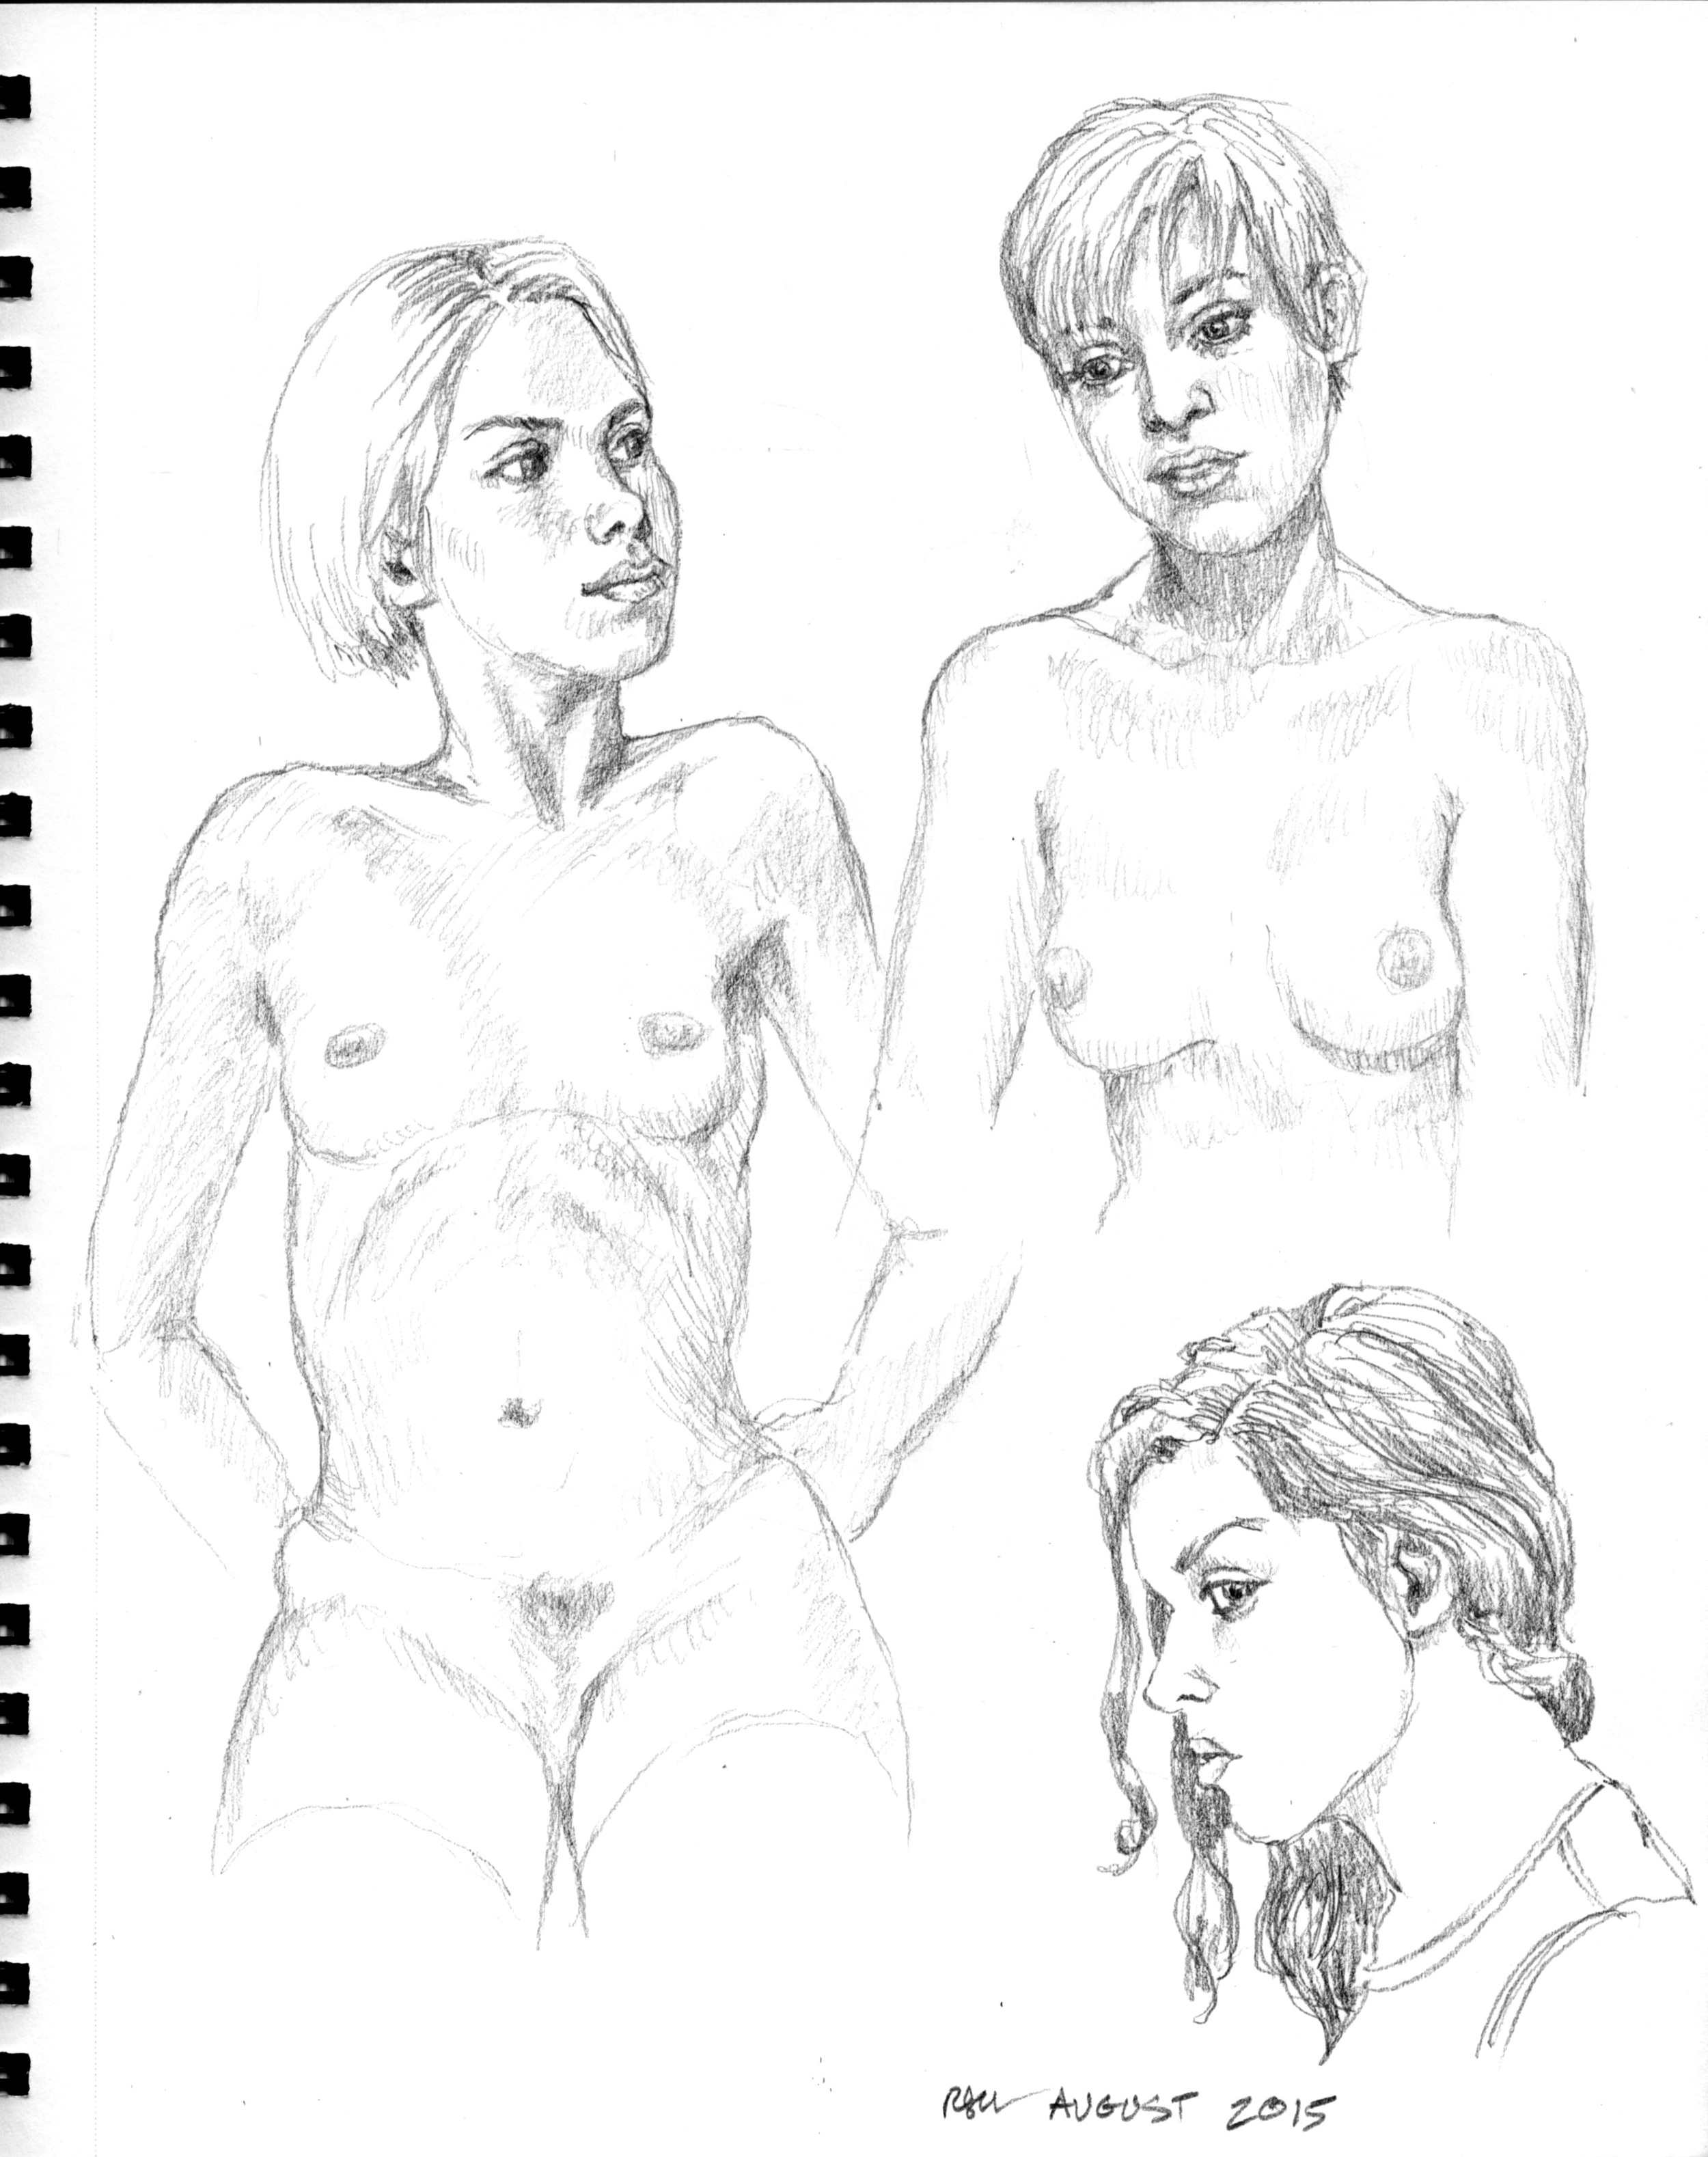 August sept 2015 sketches_282.jpg